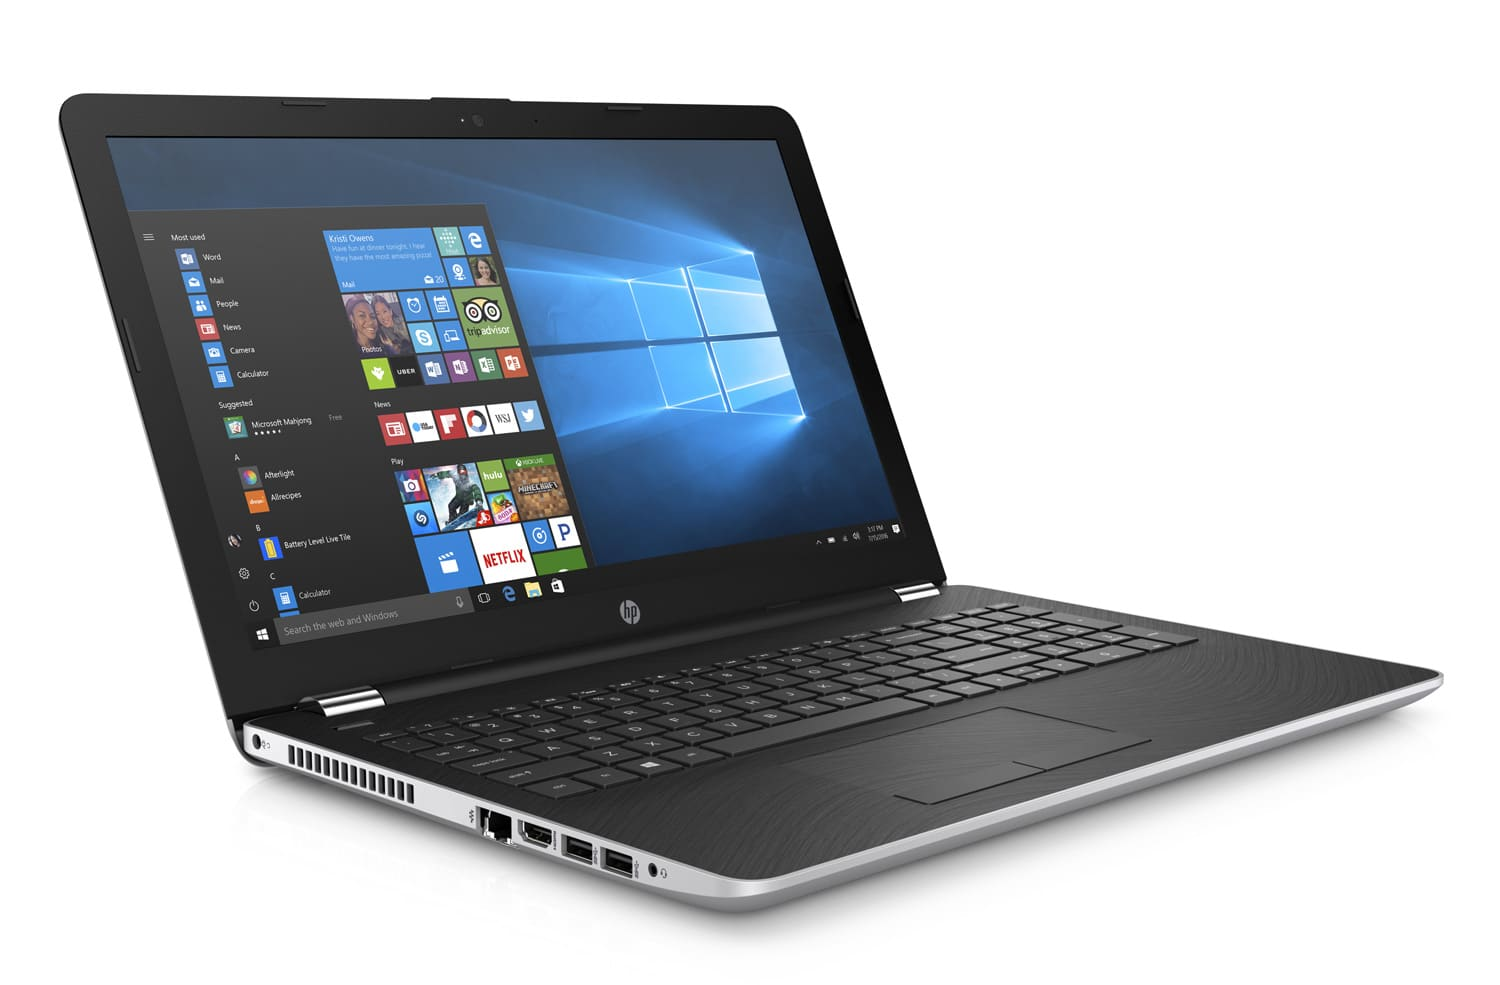 HP 15-bs096nf à 599€, PC portable 15 pouces SSD 128+1 To i3 Radeon 6 Go